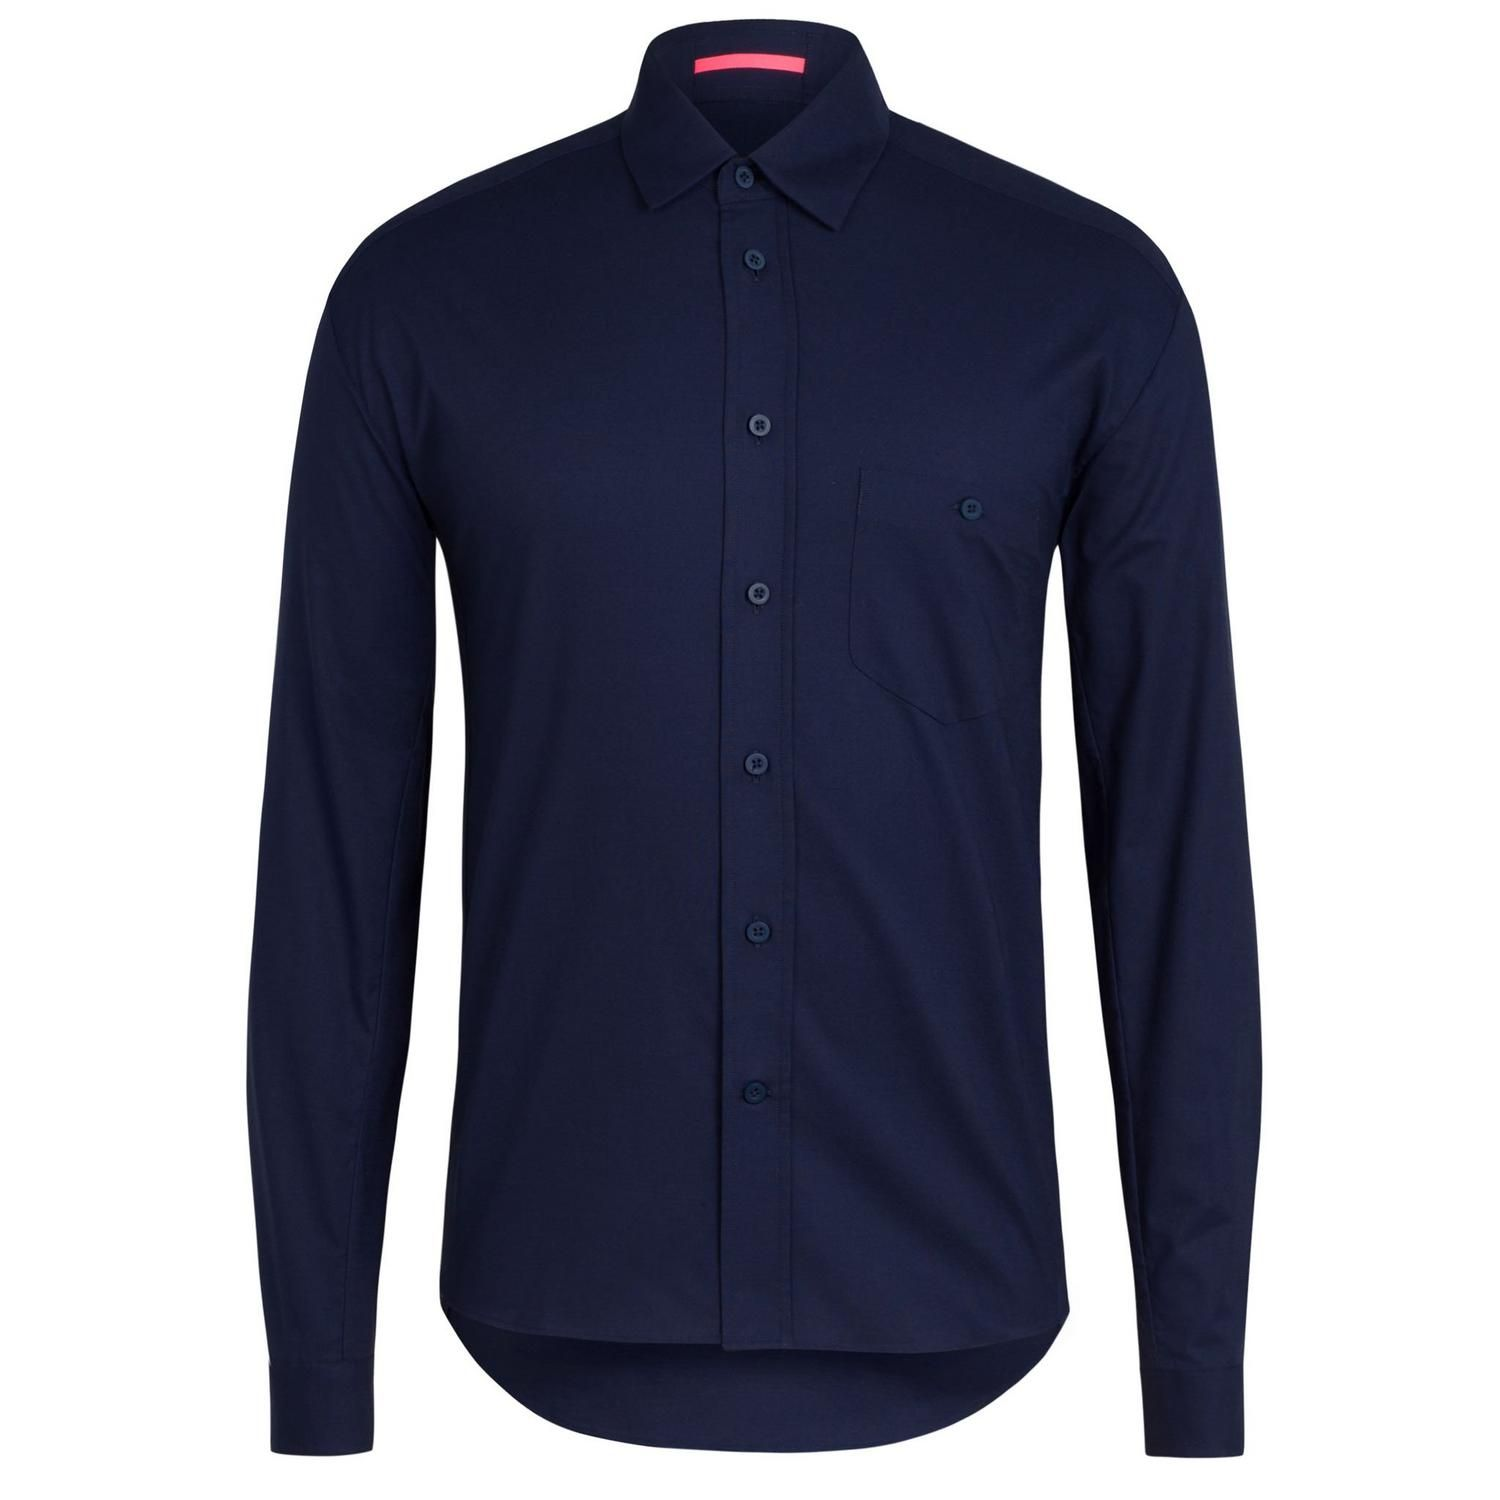 RAPHA Cotton Oxford Shirt Dark Navy OXS02XXDNY 1  93731391b